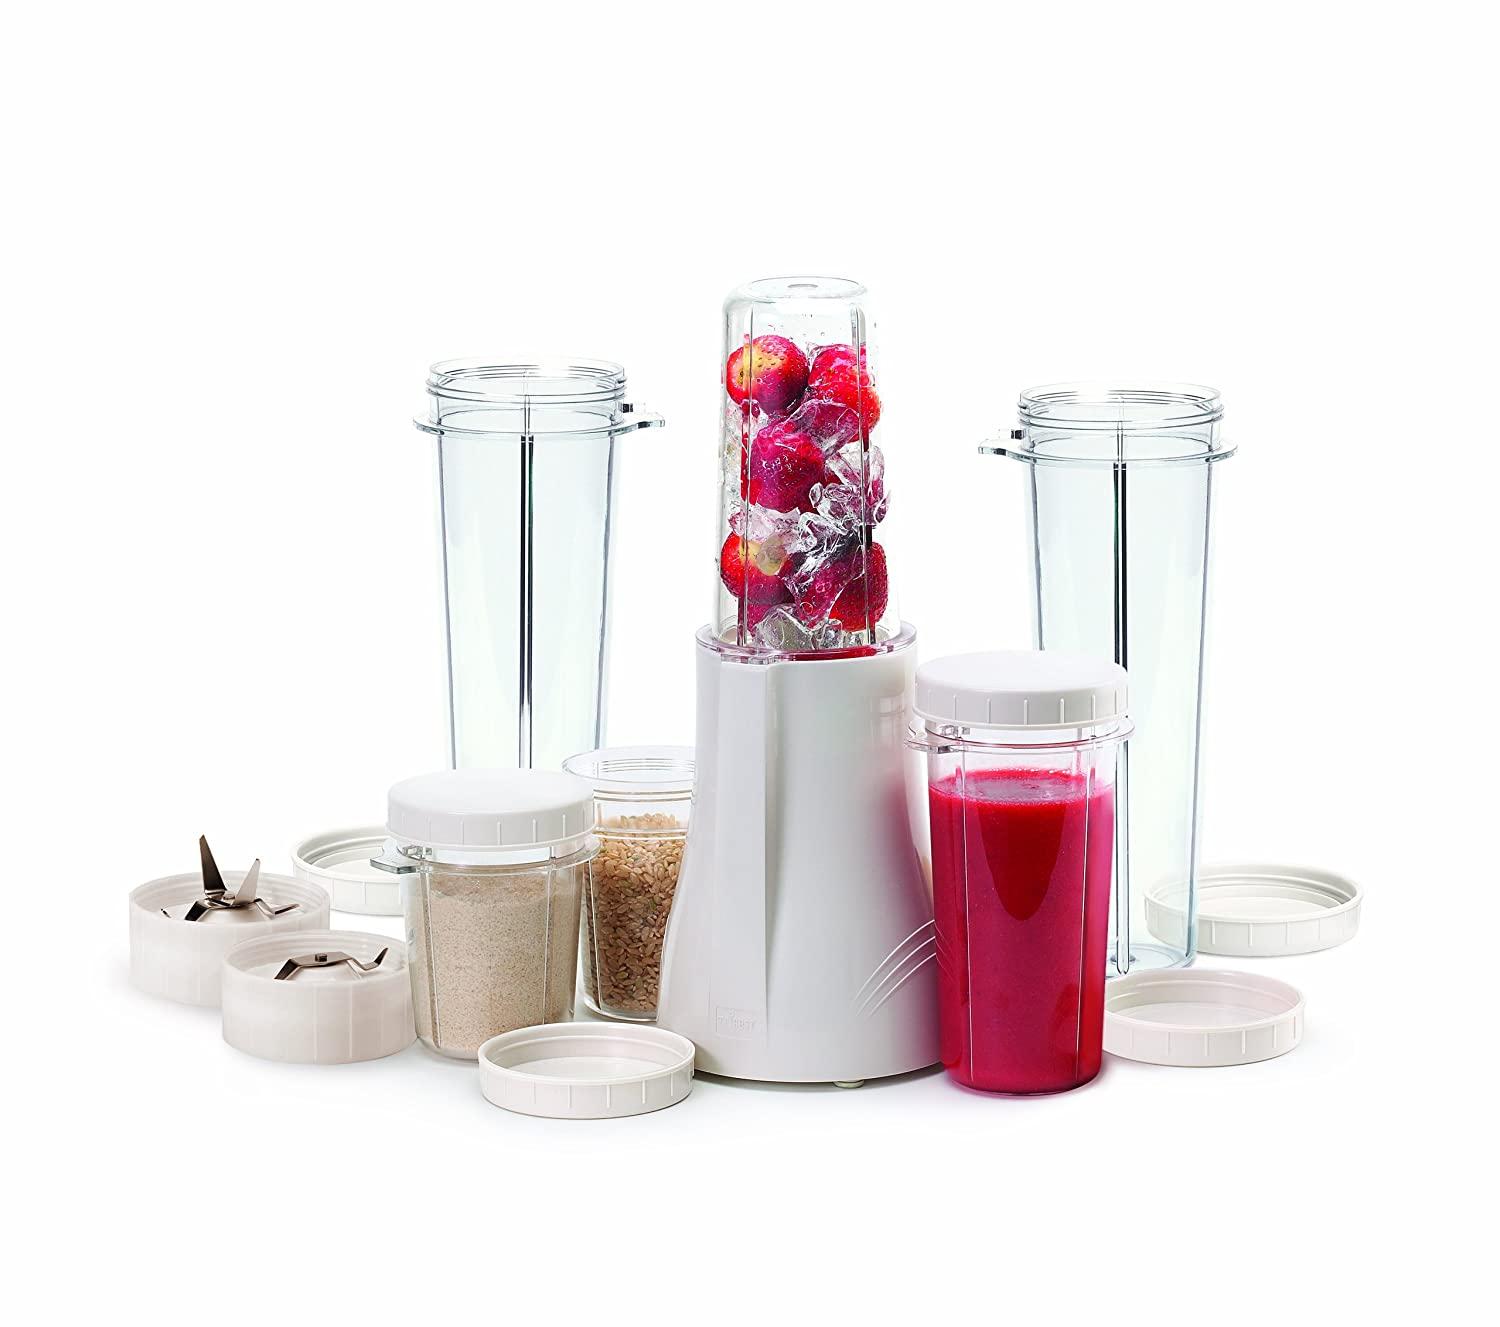 Tribest PB-150 BPA Free Personal Blender, Compact Package